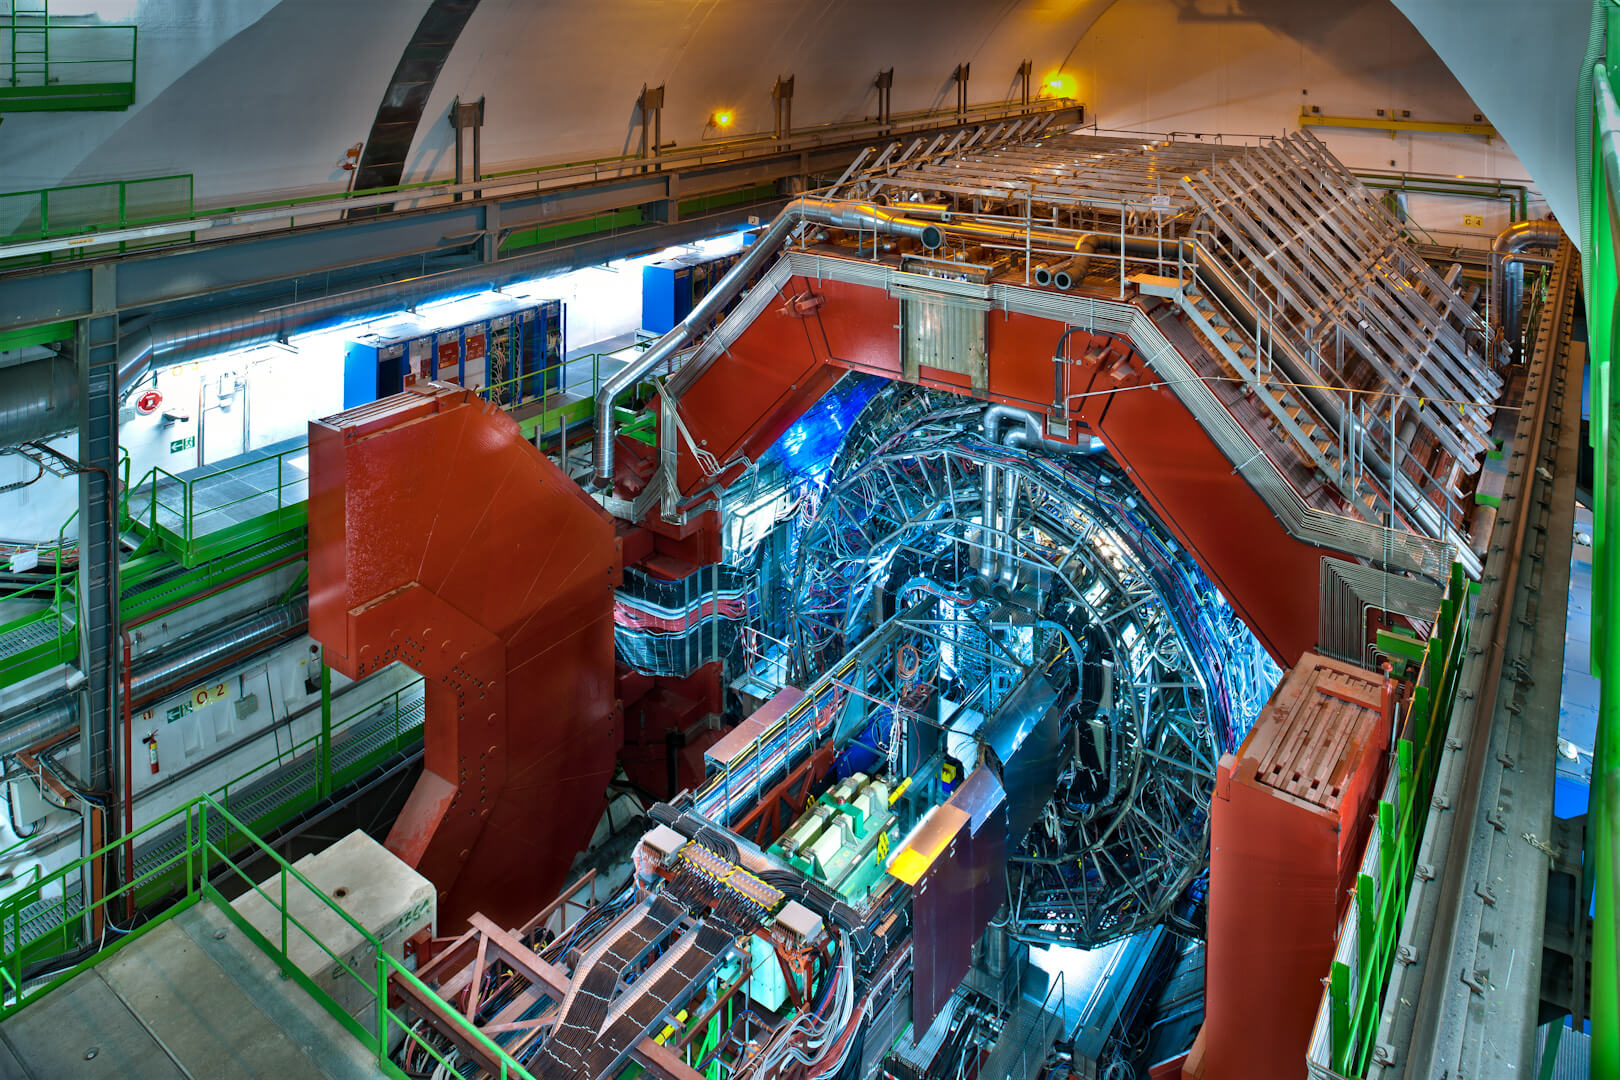 A New Large Hadron Collider Discovery Adds Strangeness to the Already Strange